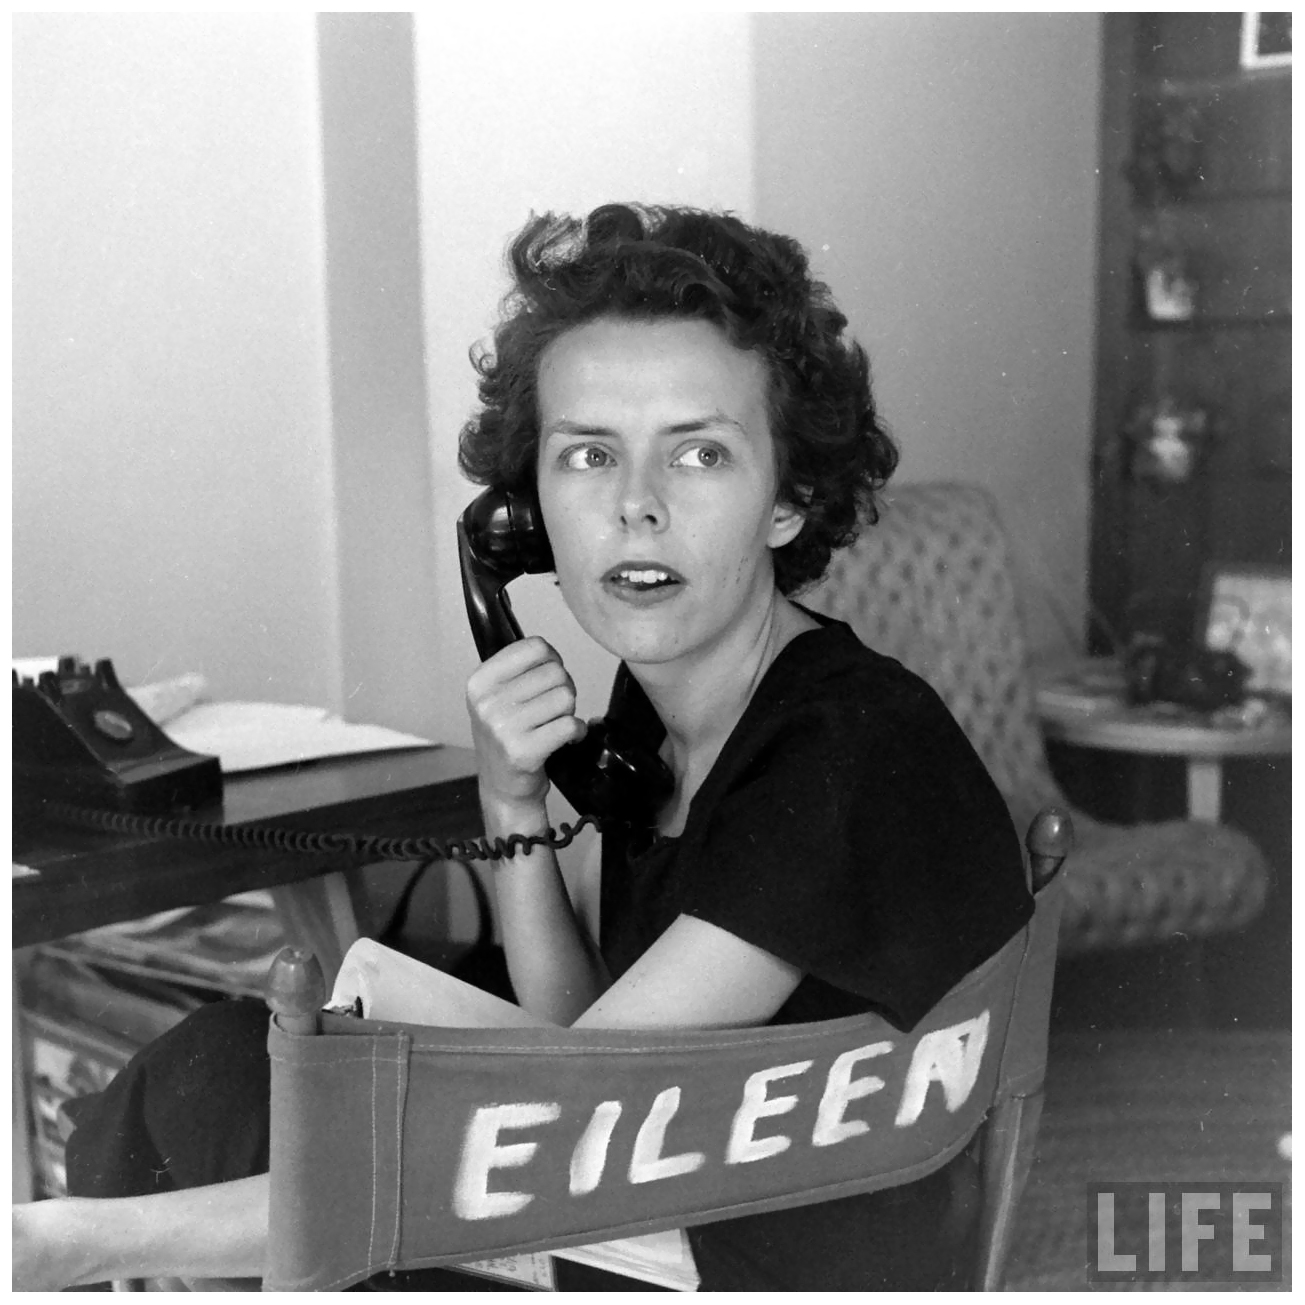 Eileen Ford Modeling Agency 169 Pleasurephoto